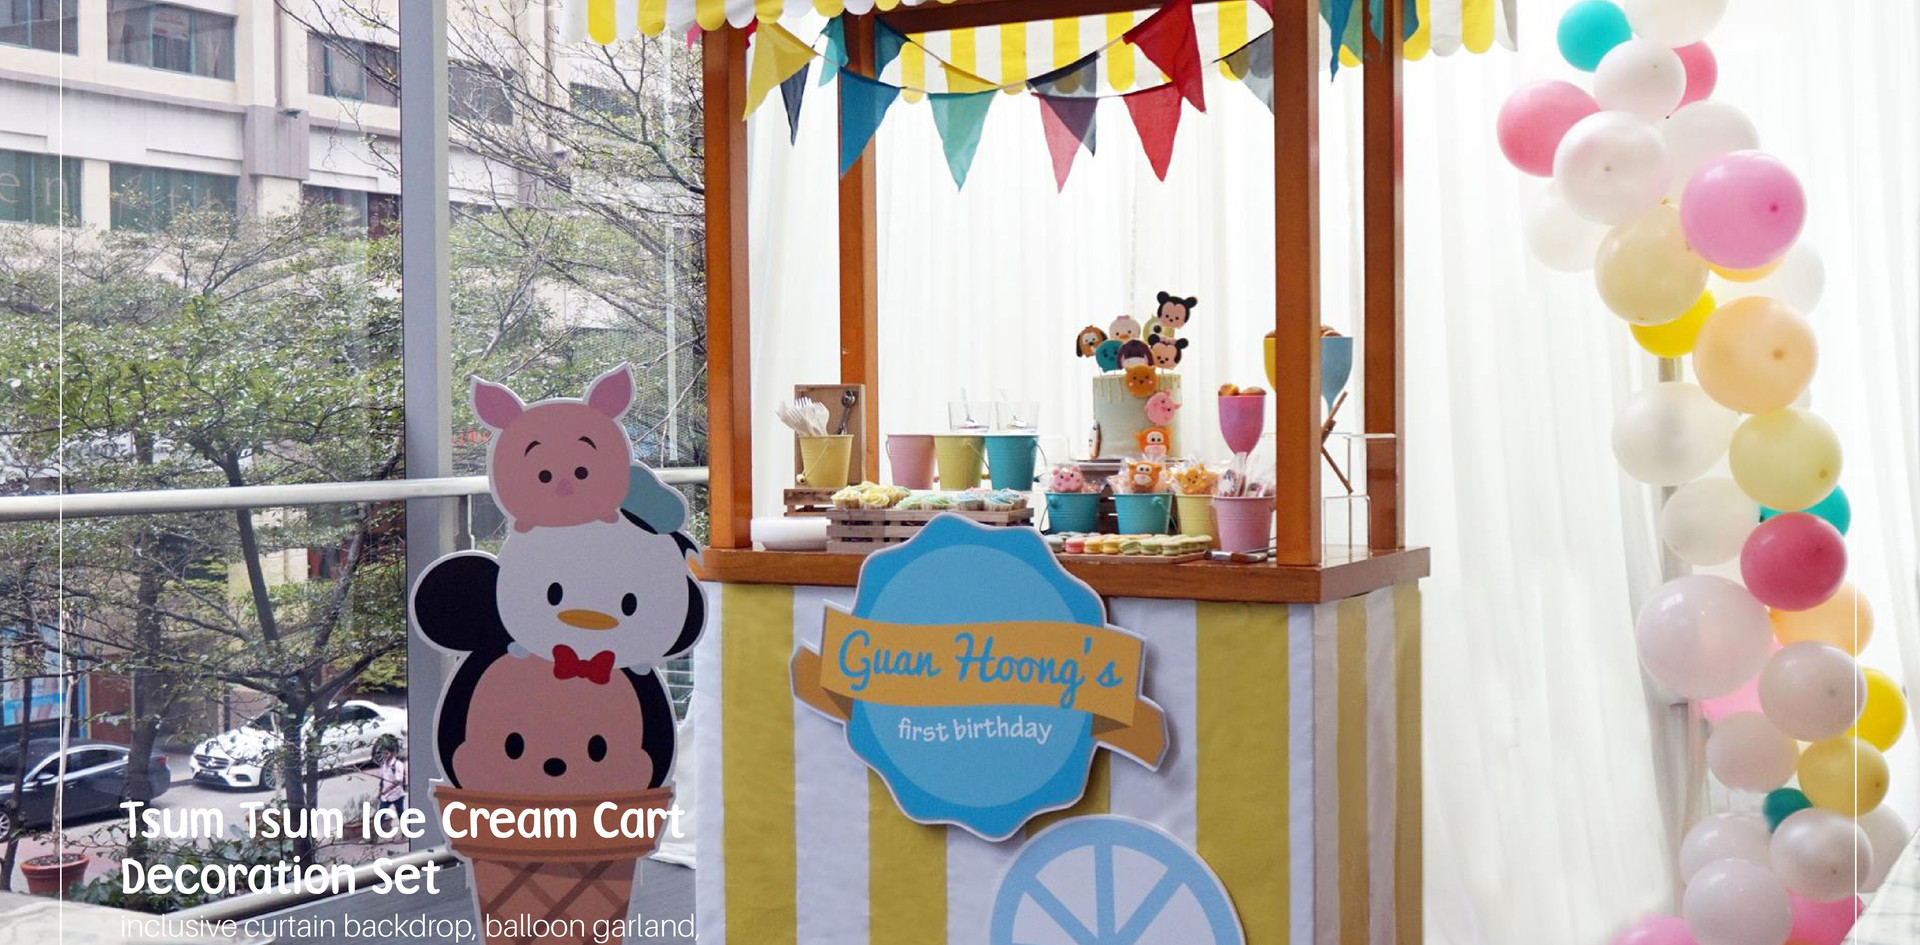 Tsum Tsum Ice Cream Stall Dessert Table